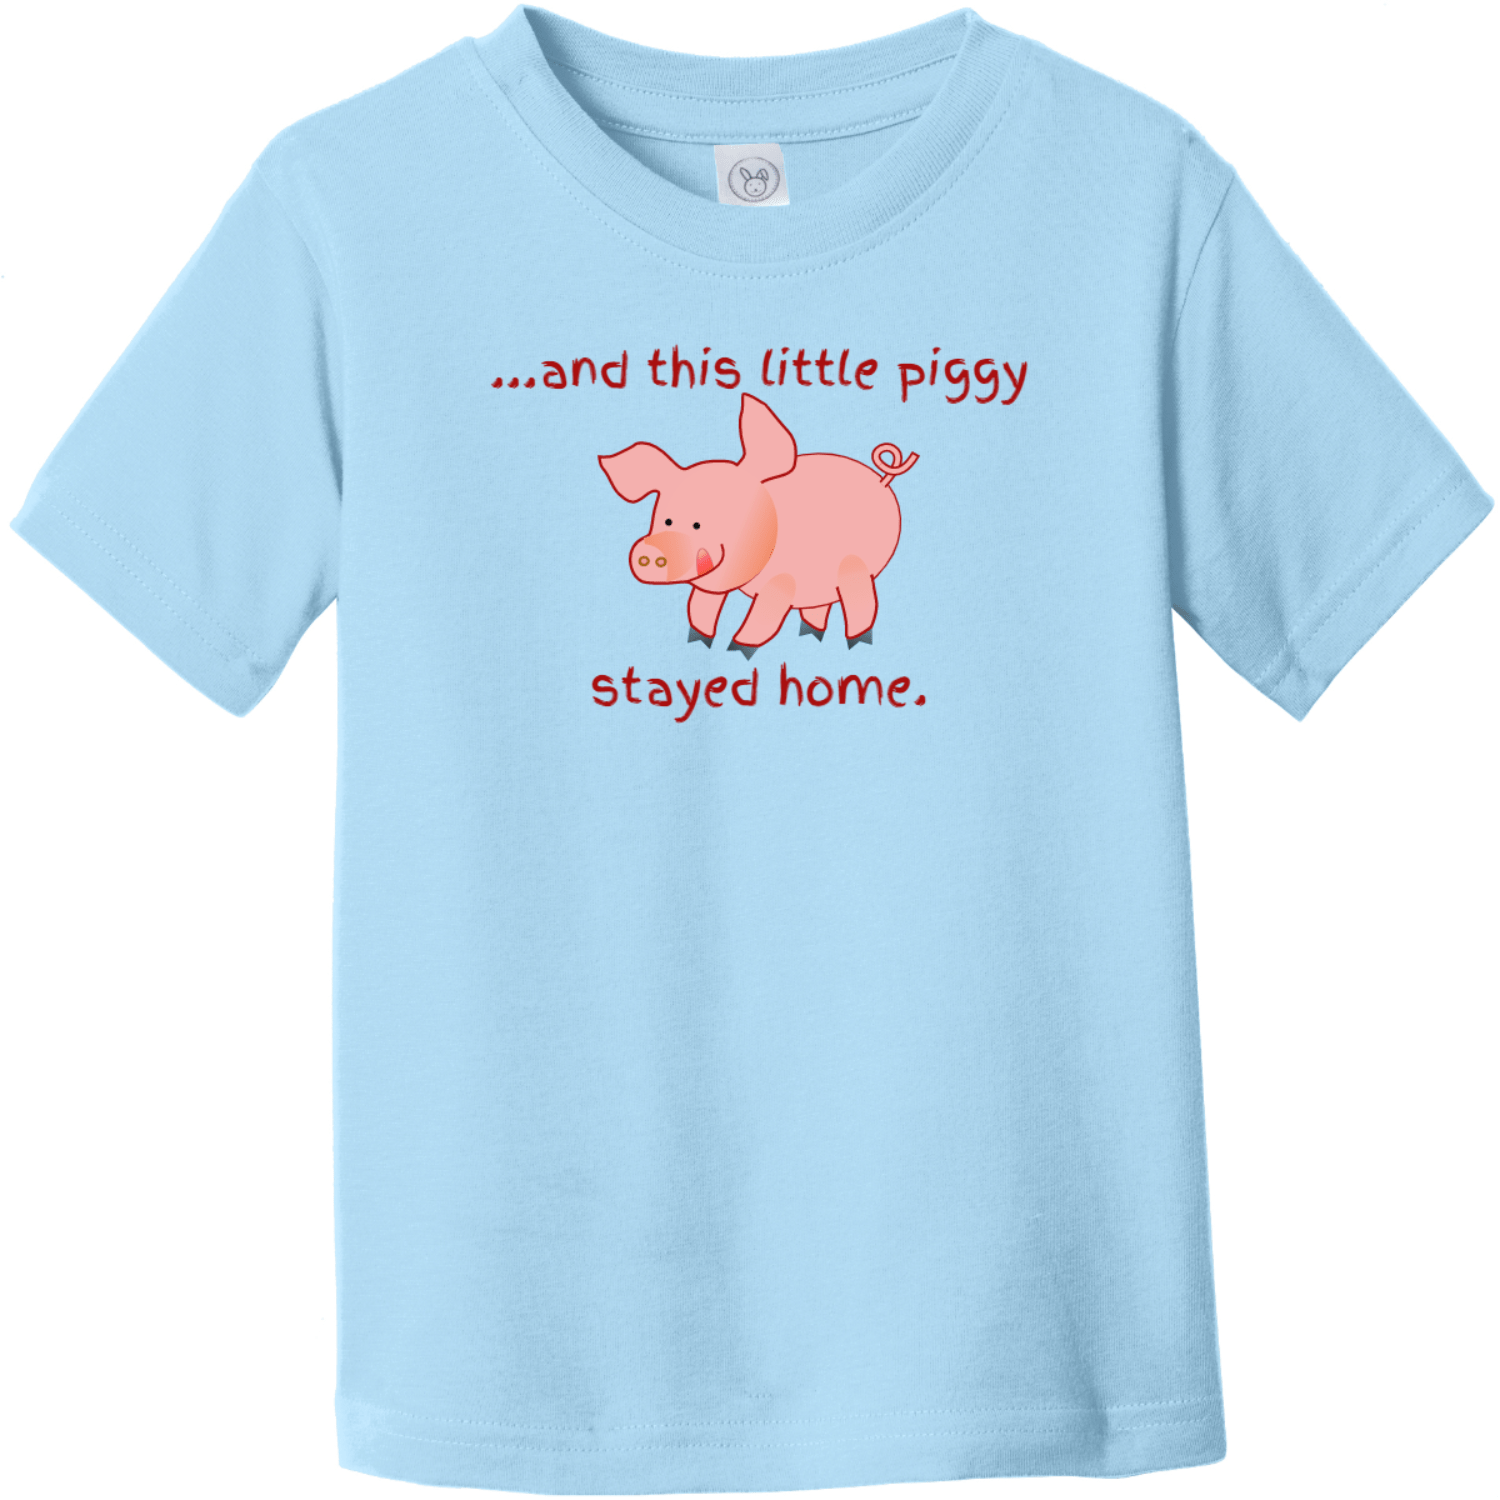 This Little Piggy Stayed Home Toddler T-Shirt Light Blue Rabbit Skins Toddler Fine Jersey Tee RS3321